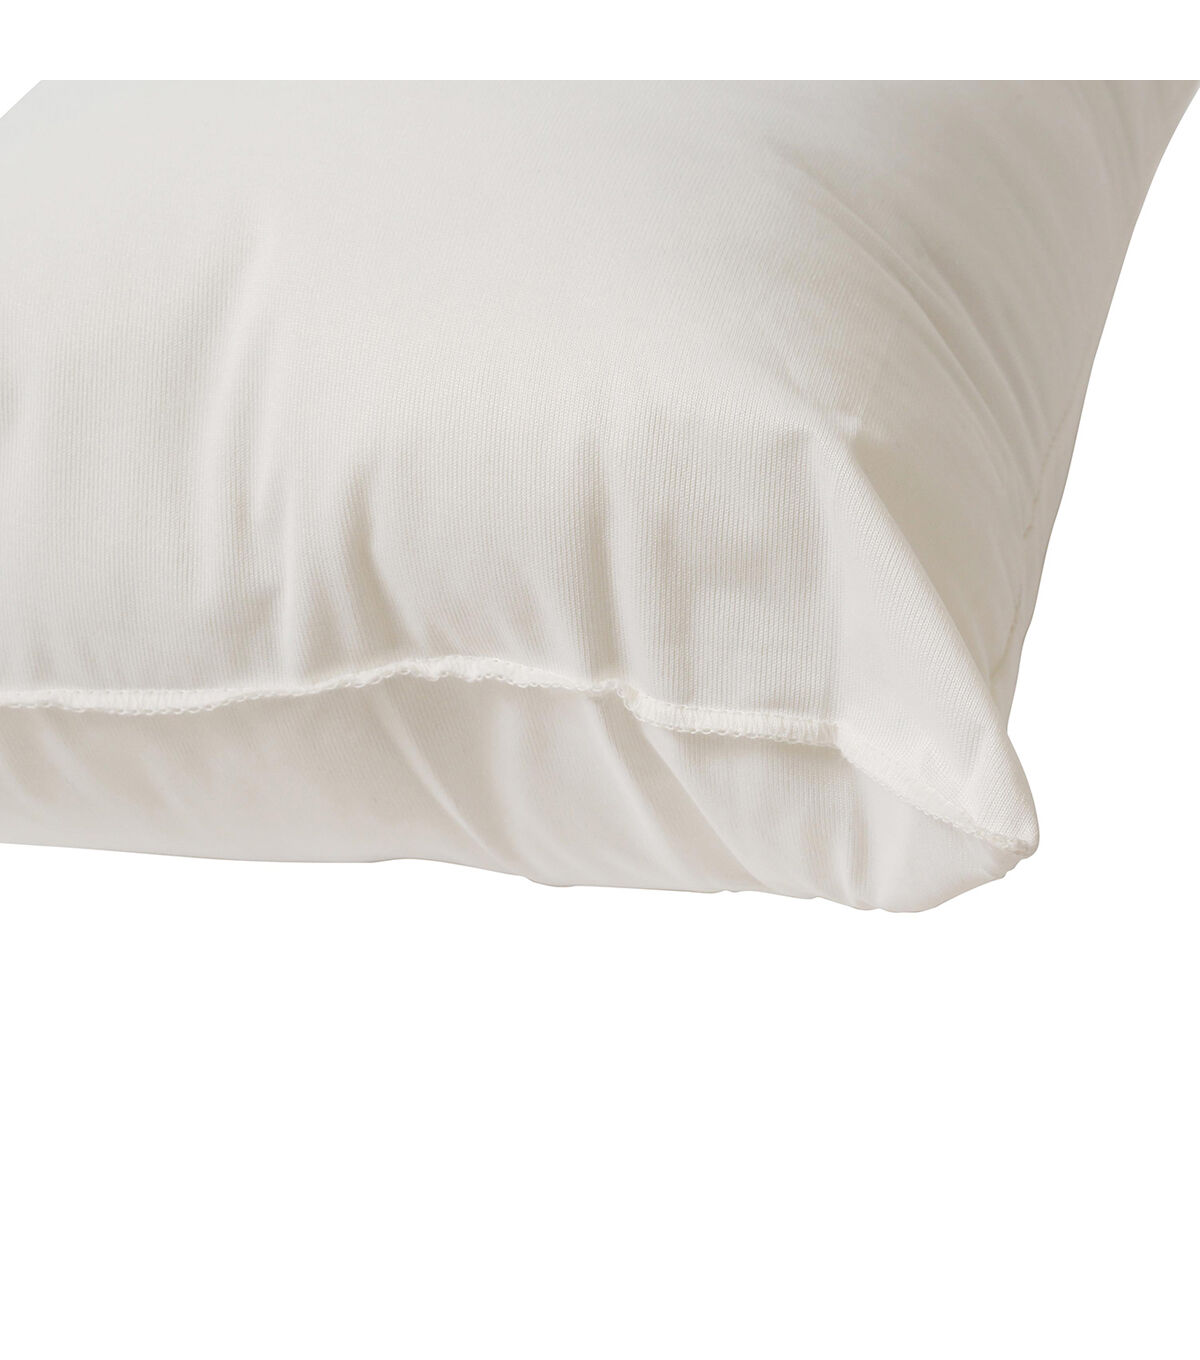 poly fil weather soft indoor outdoor pillow insert 18x18